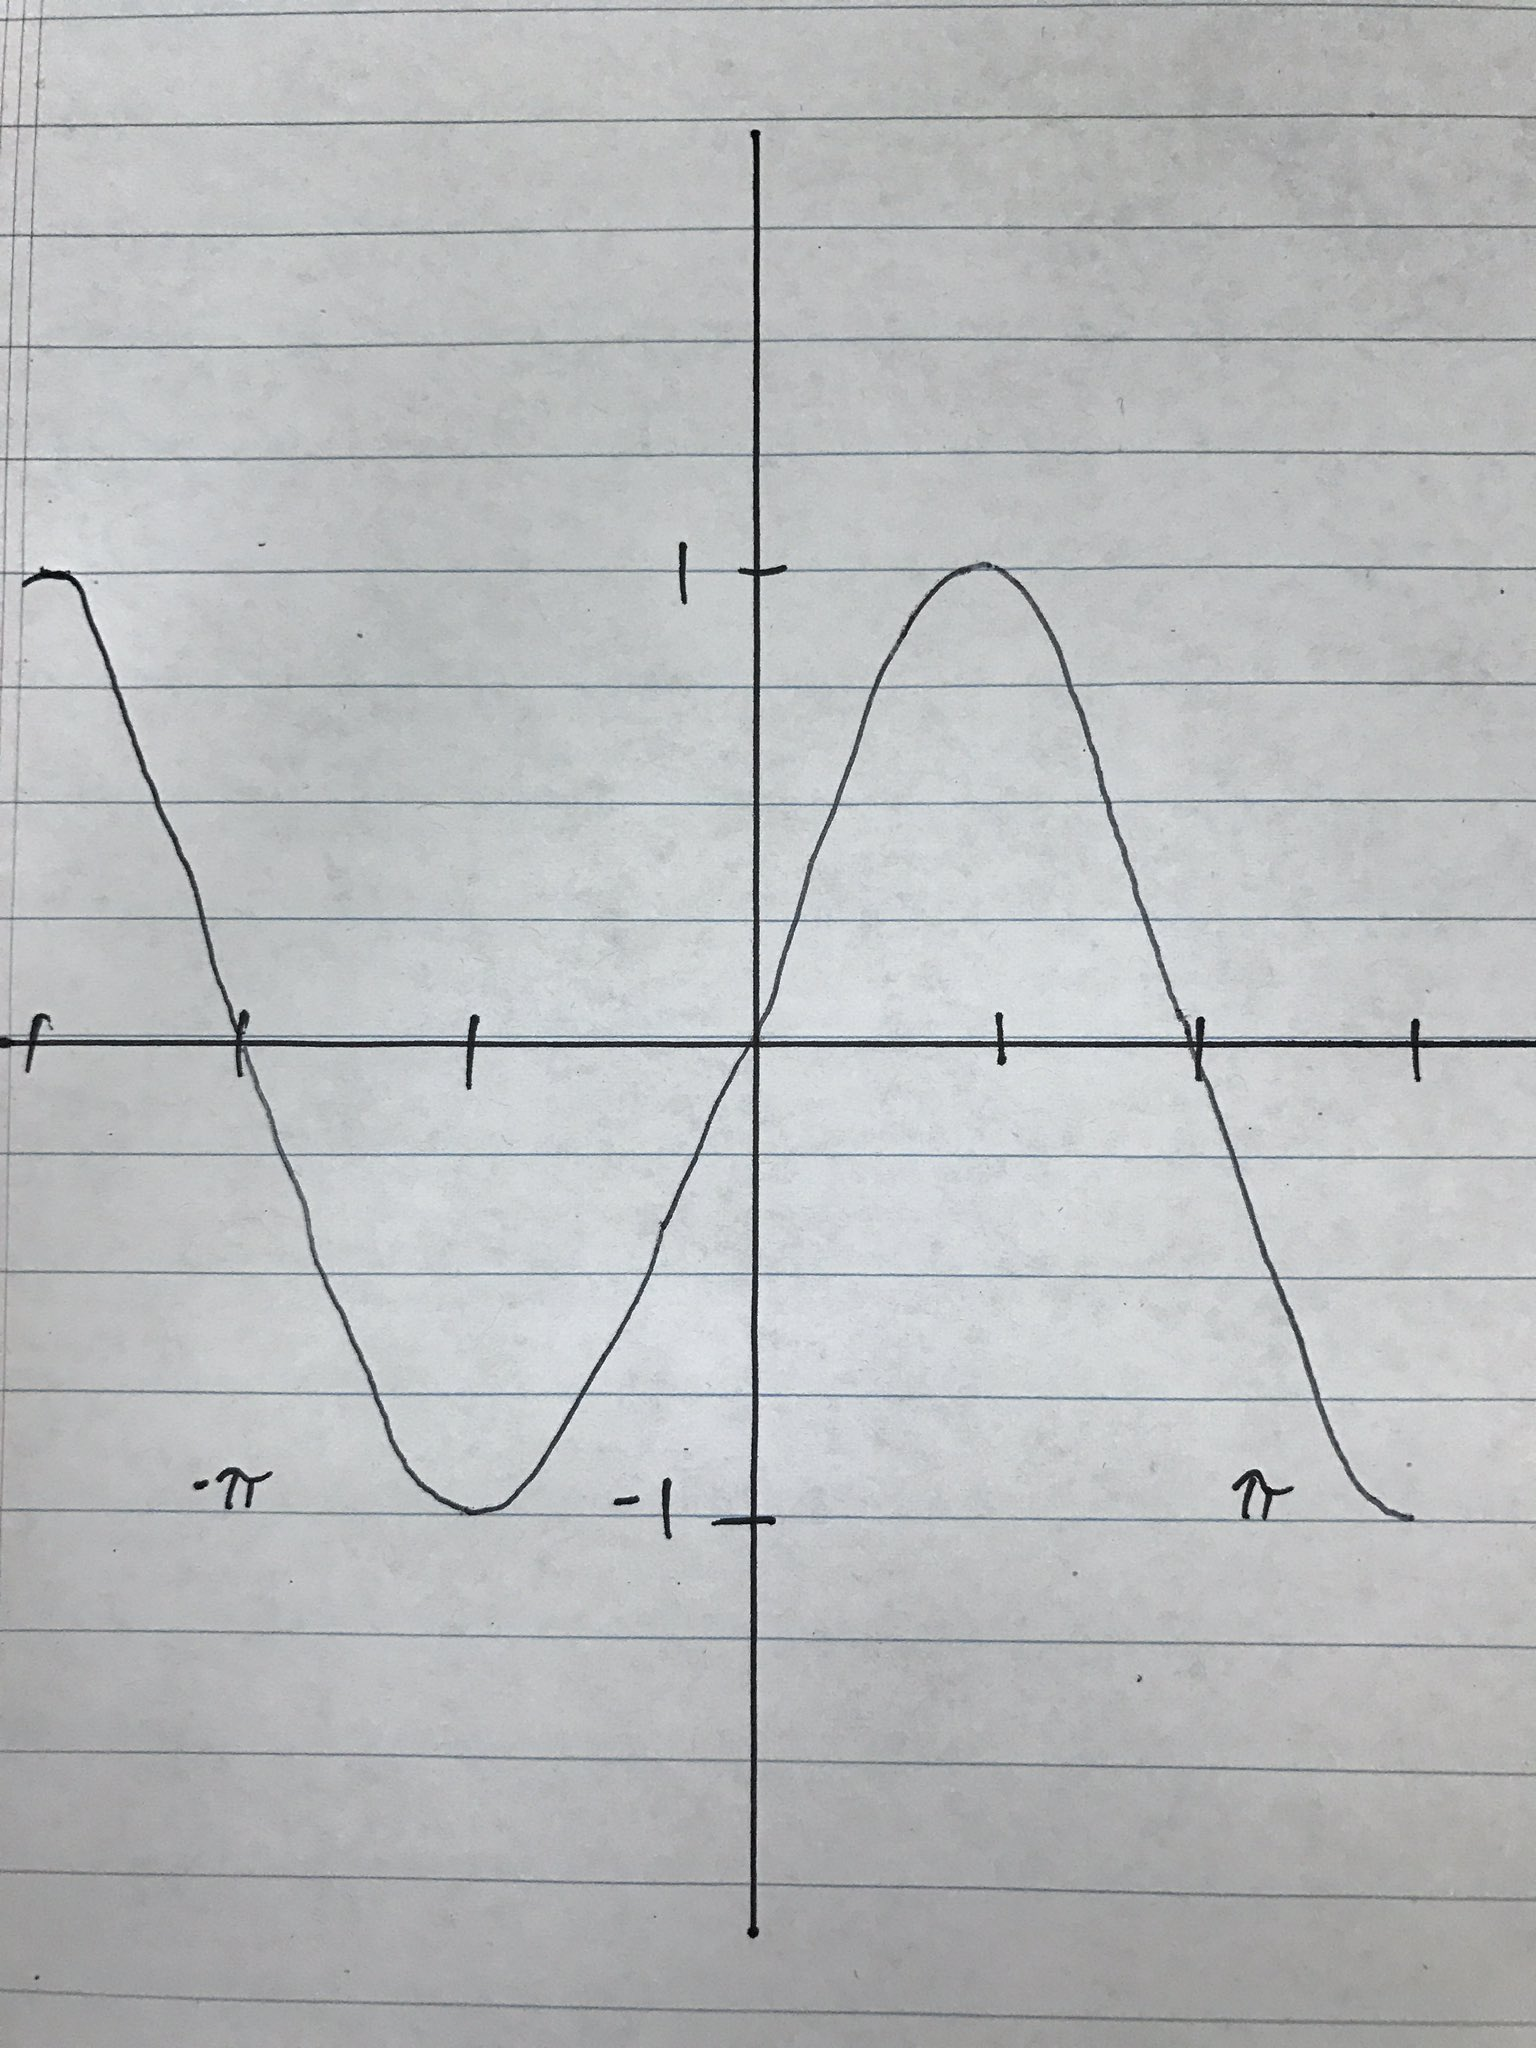 I couldn't make it to the #MarchForScience today but check out this sine I made https://t.co/OmYEmpDgDM